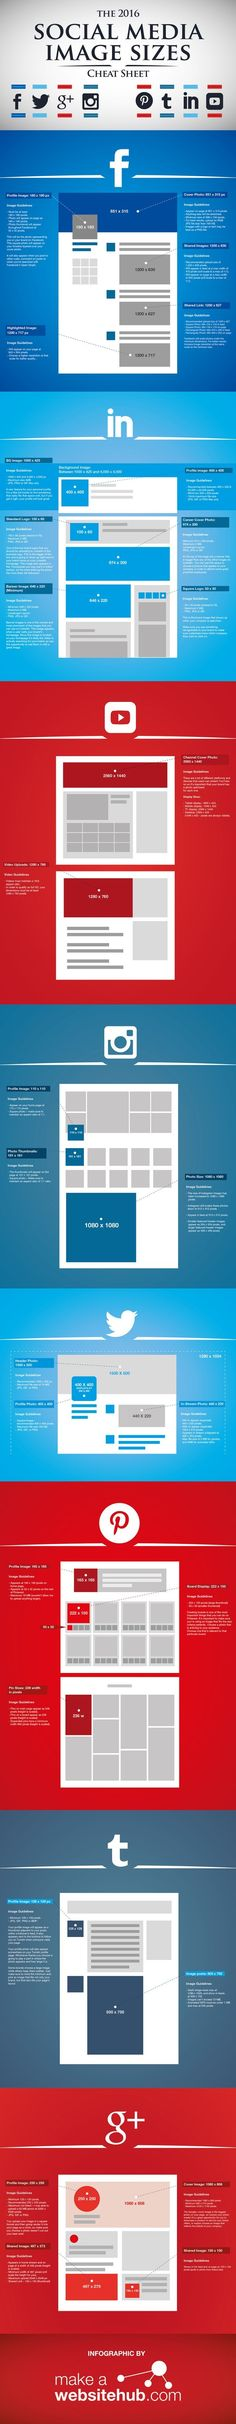 Social Media Image Dimension Guide for 2016 | Marketing Technology